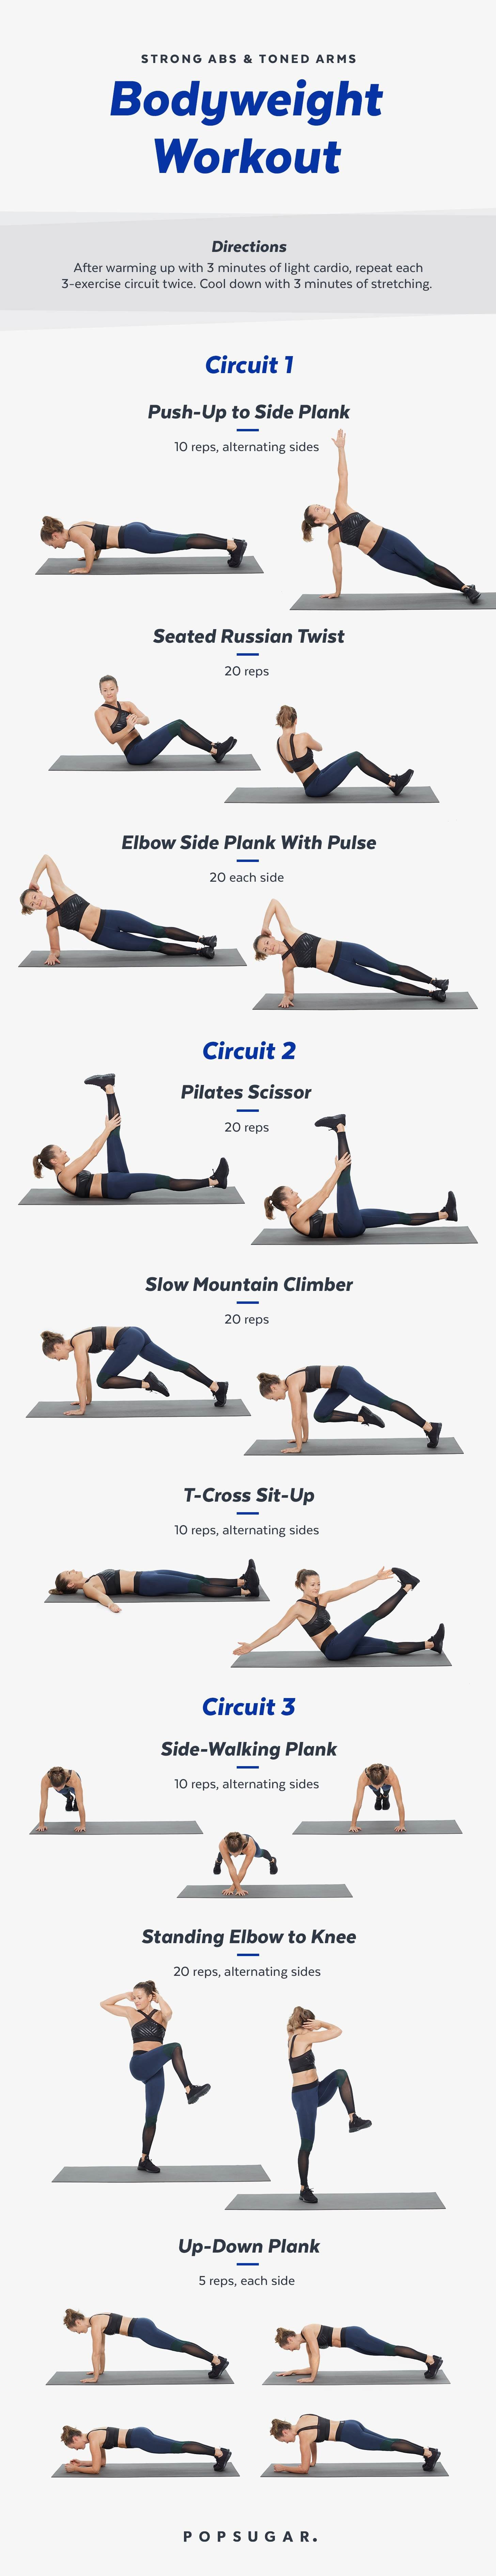 image regarding Printable Arm Workouts identify Printable Weight Exercise For Abdominal muscles and Palms POPSUGAR Physical fitness